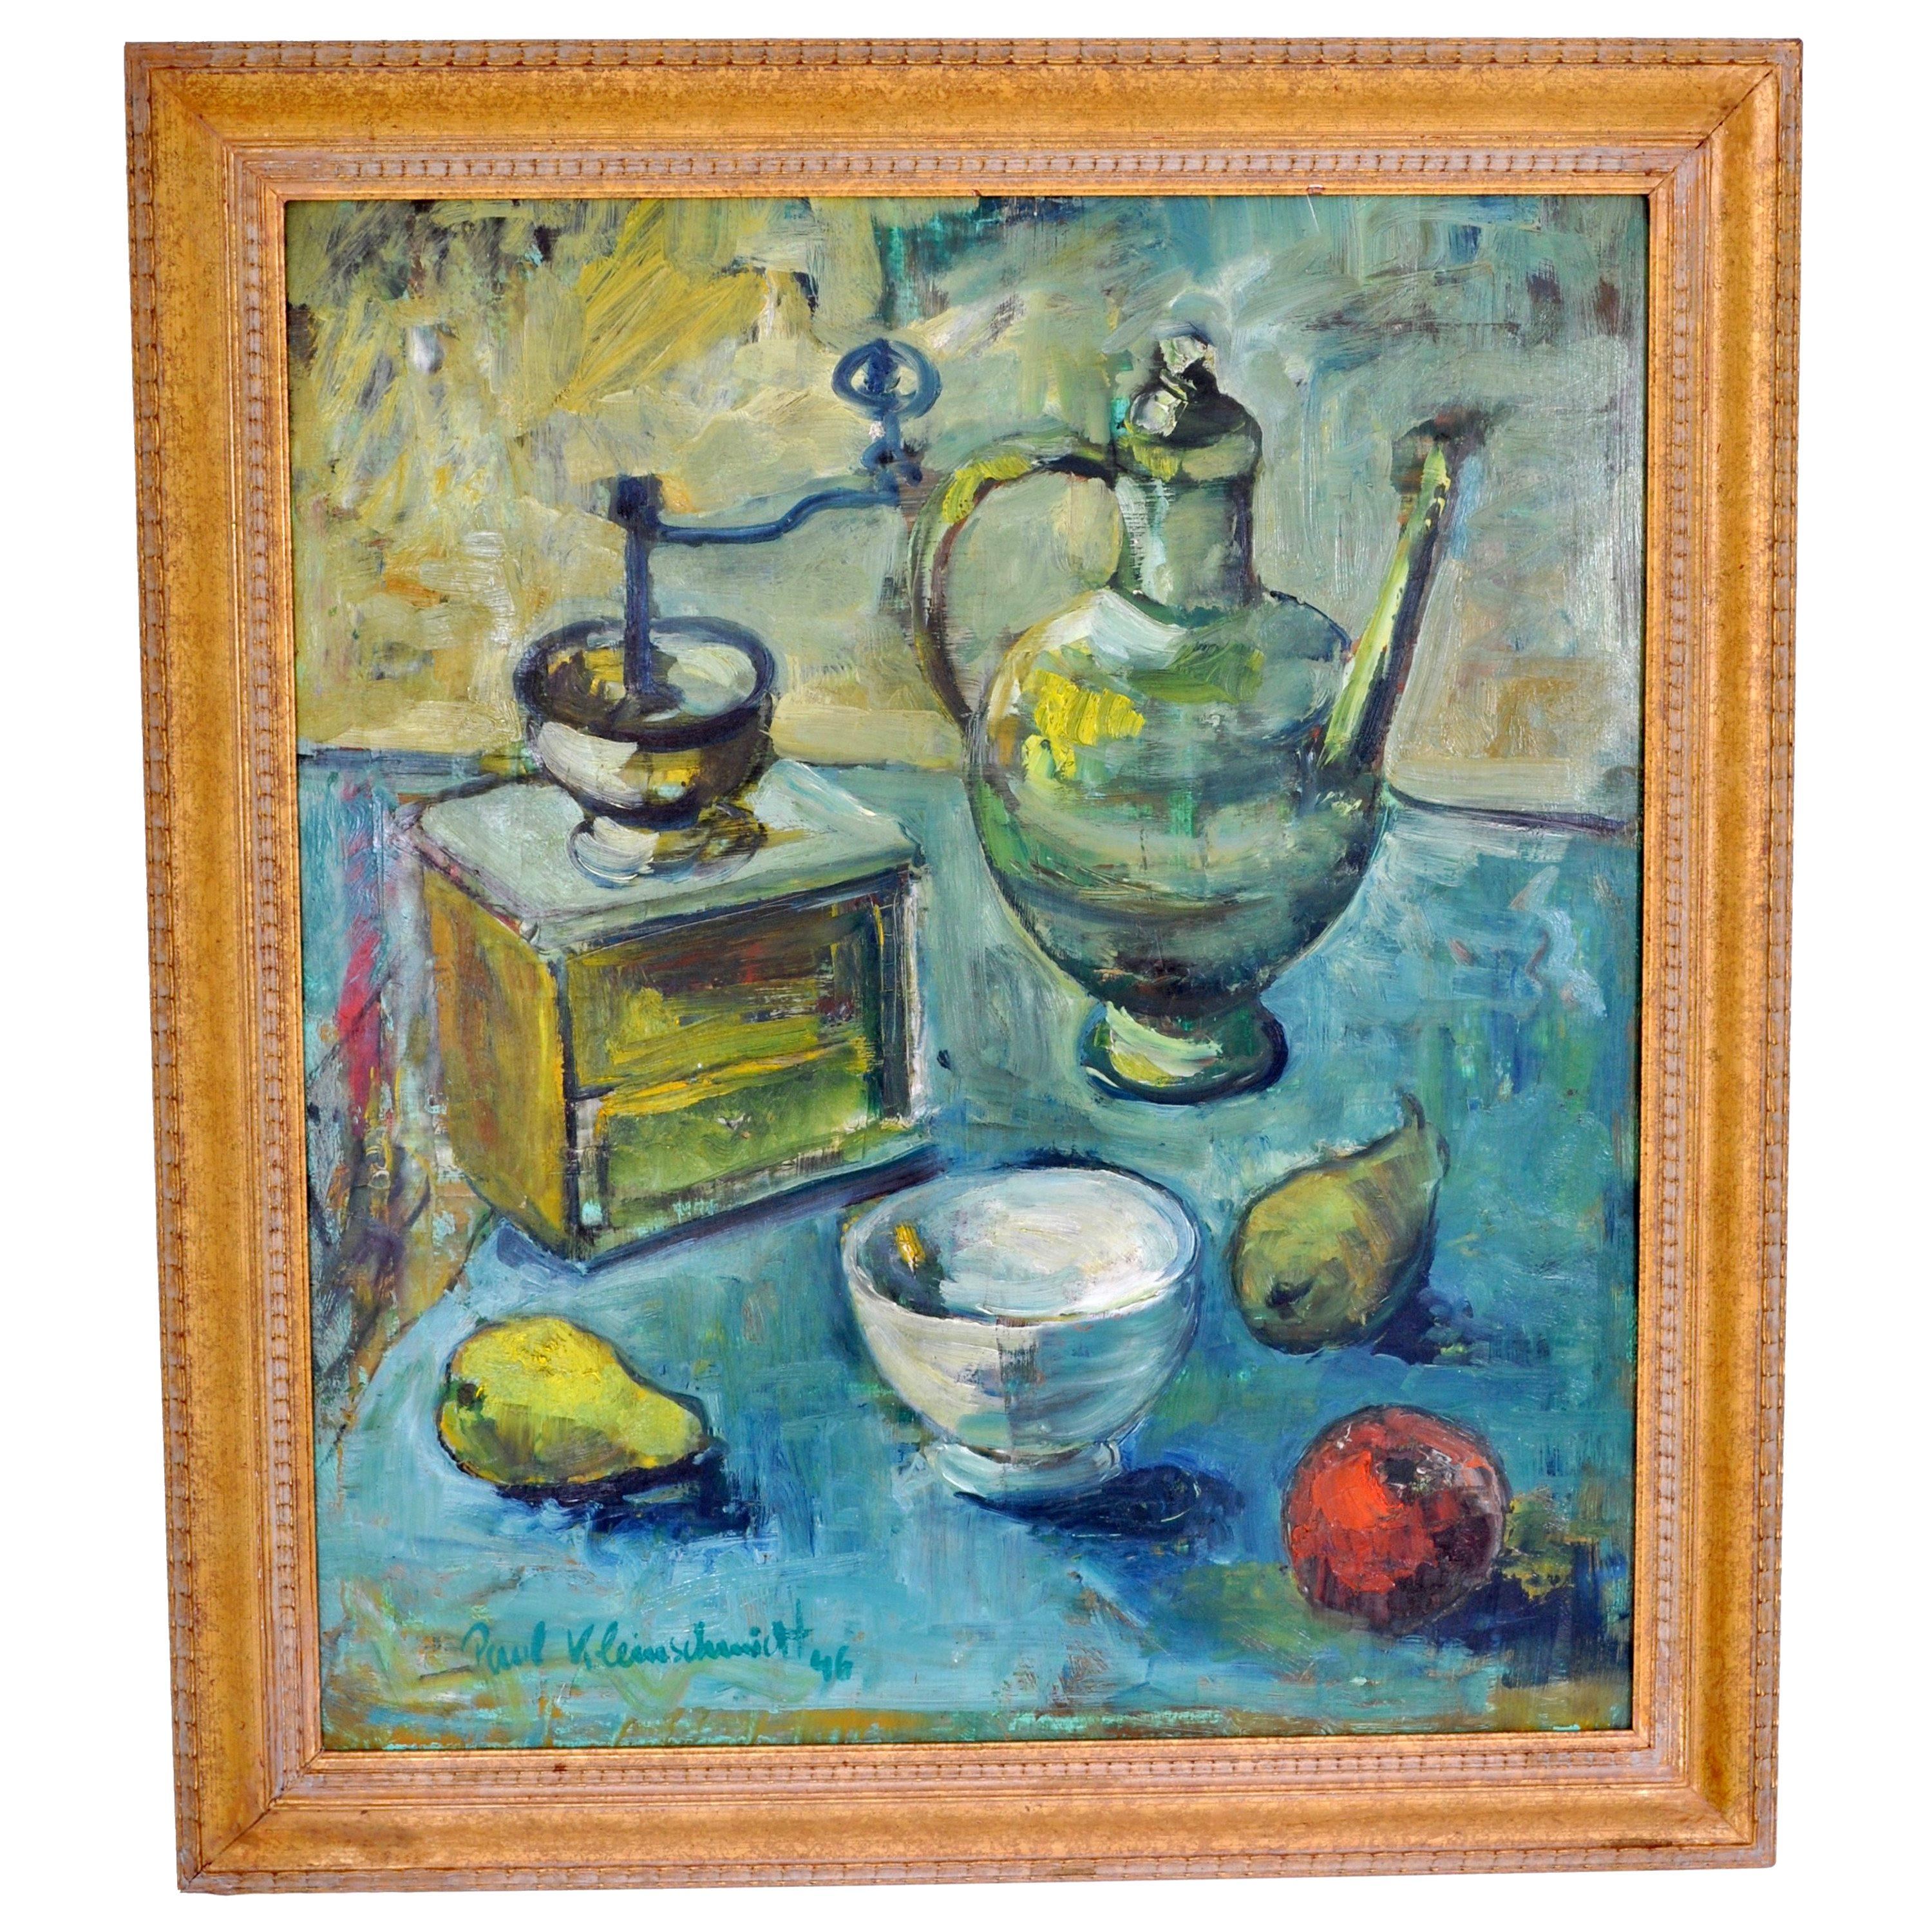 German Expressionist Oil on Board Still Life Painting by Paul Kleinschmidt 1946